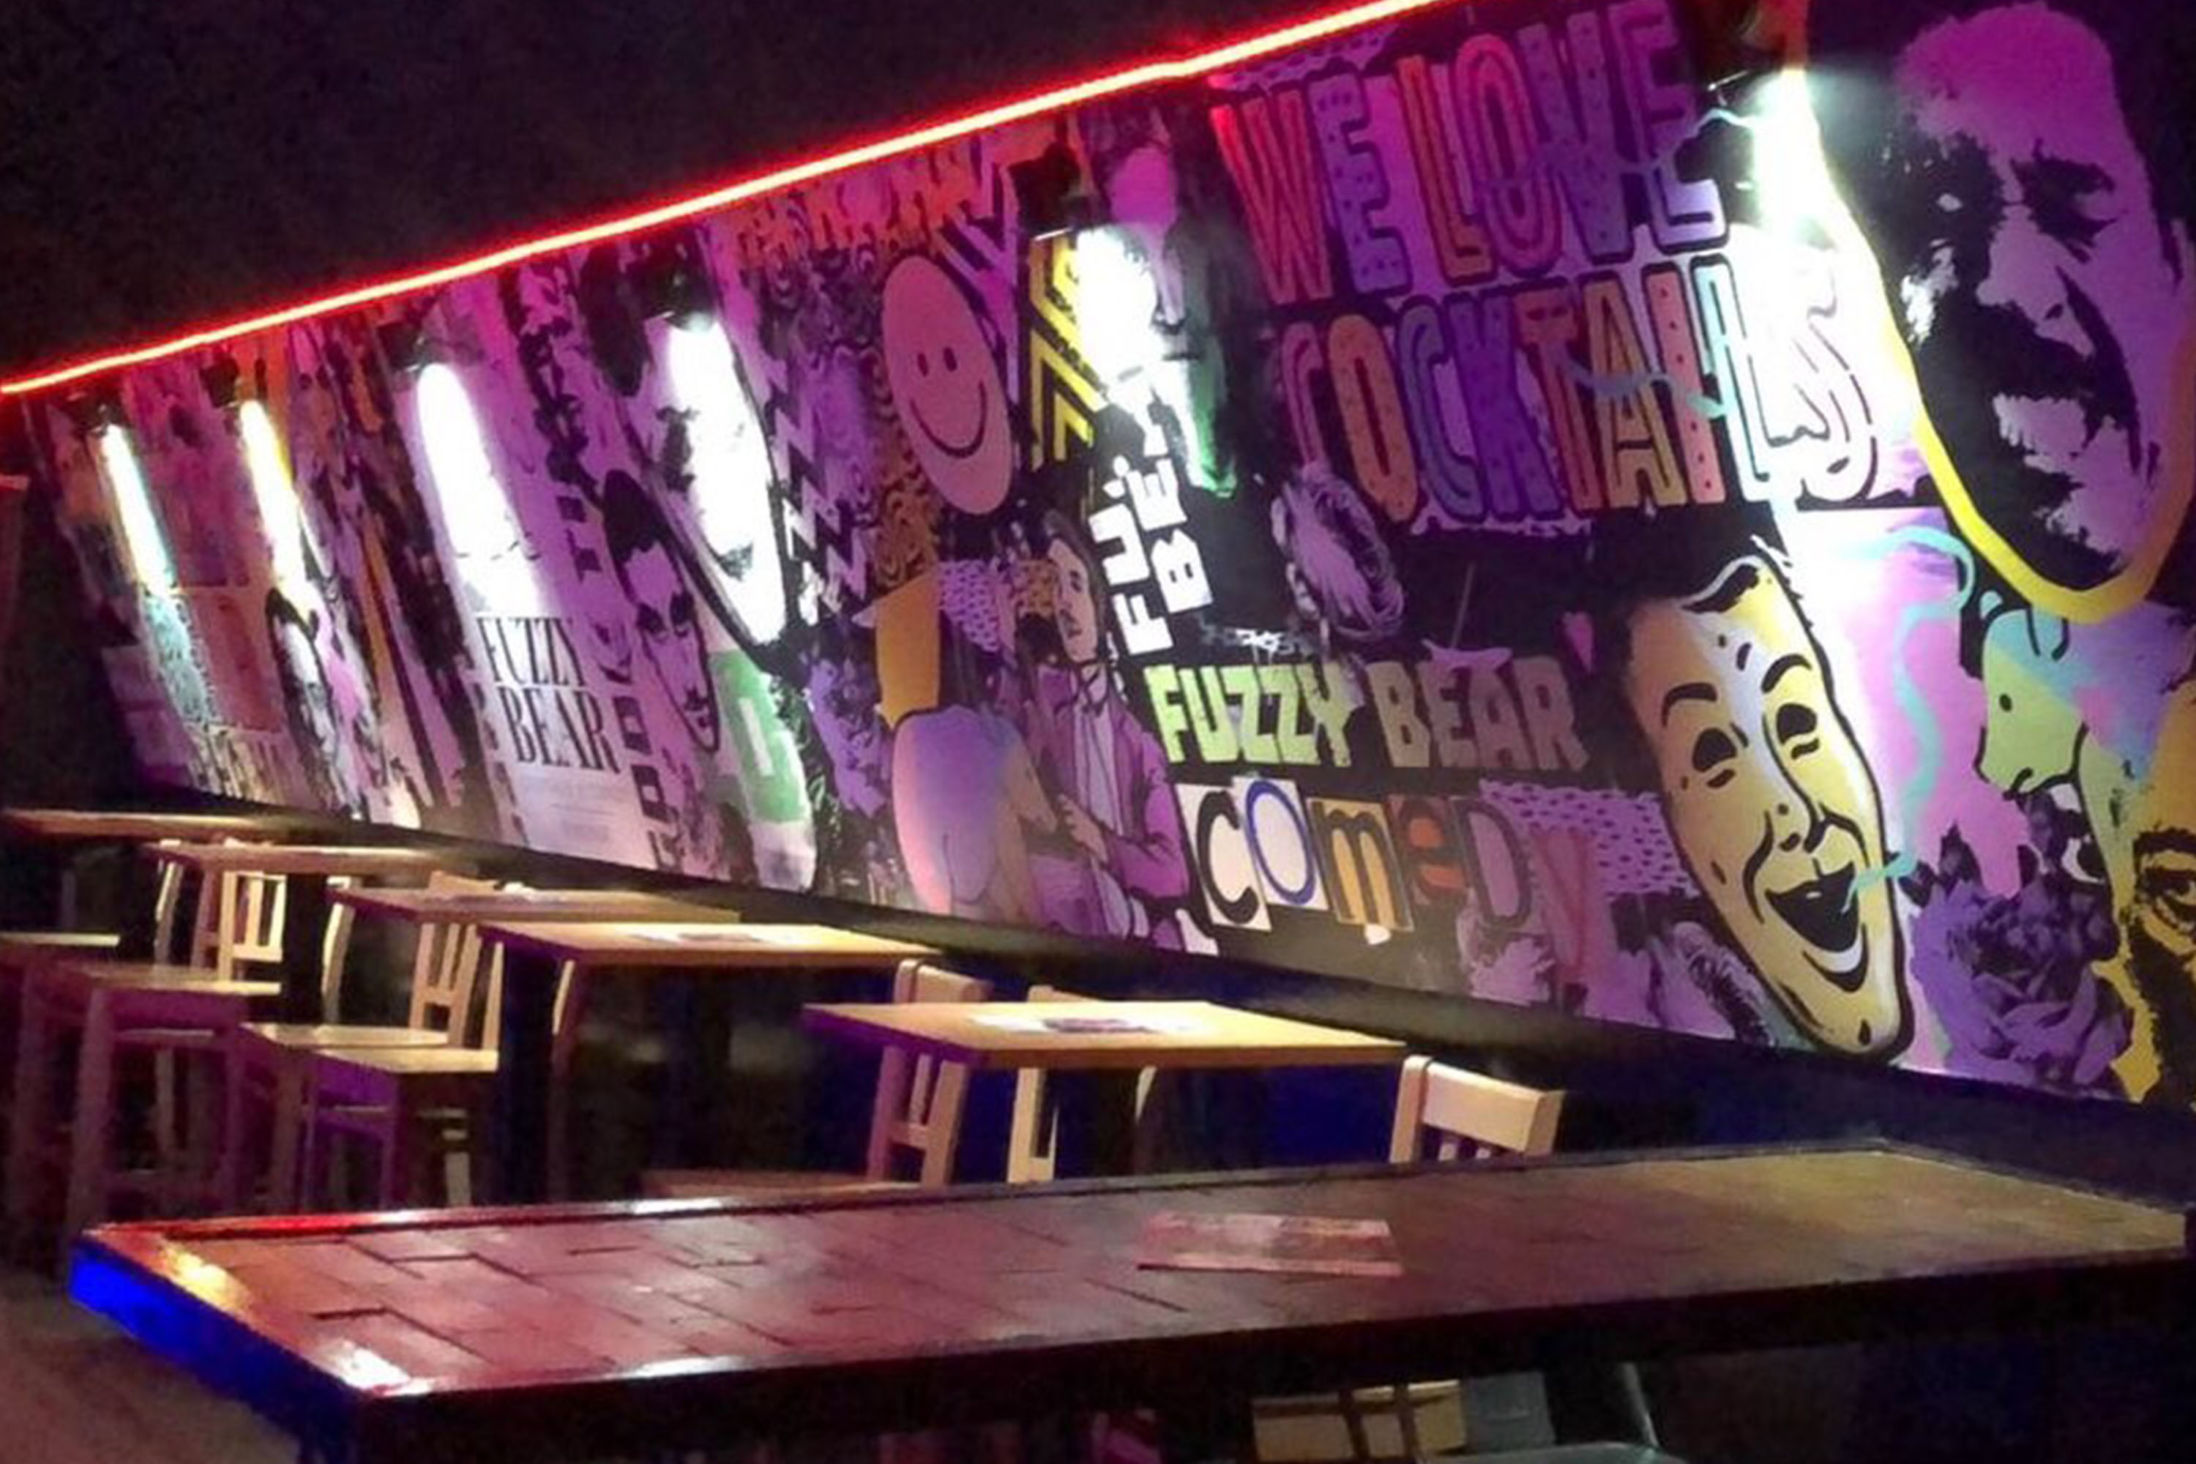 Best Bars in Windsor - The Fuzzy Bear